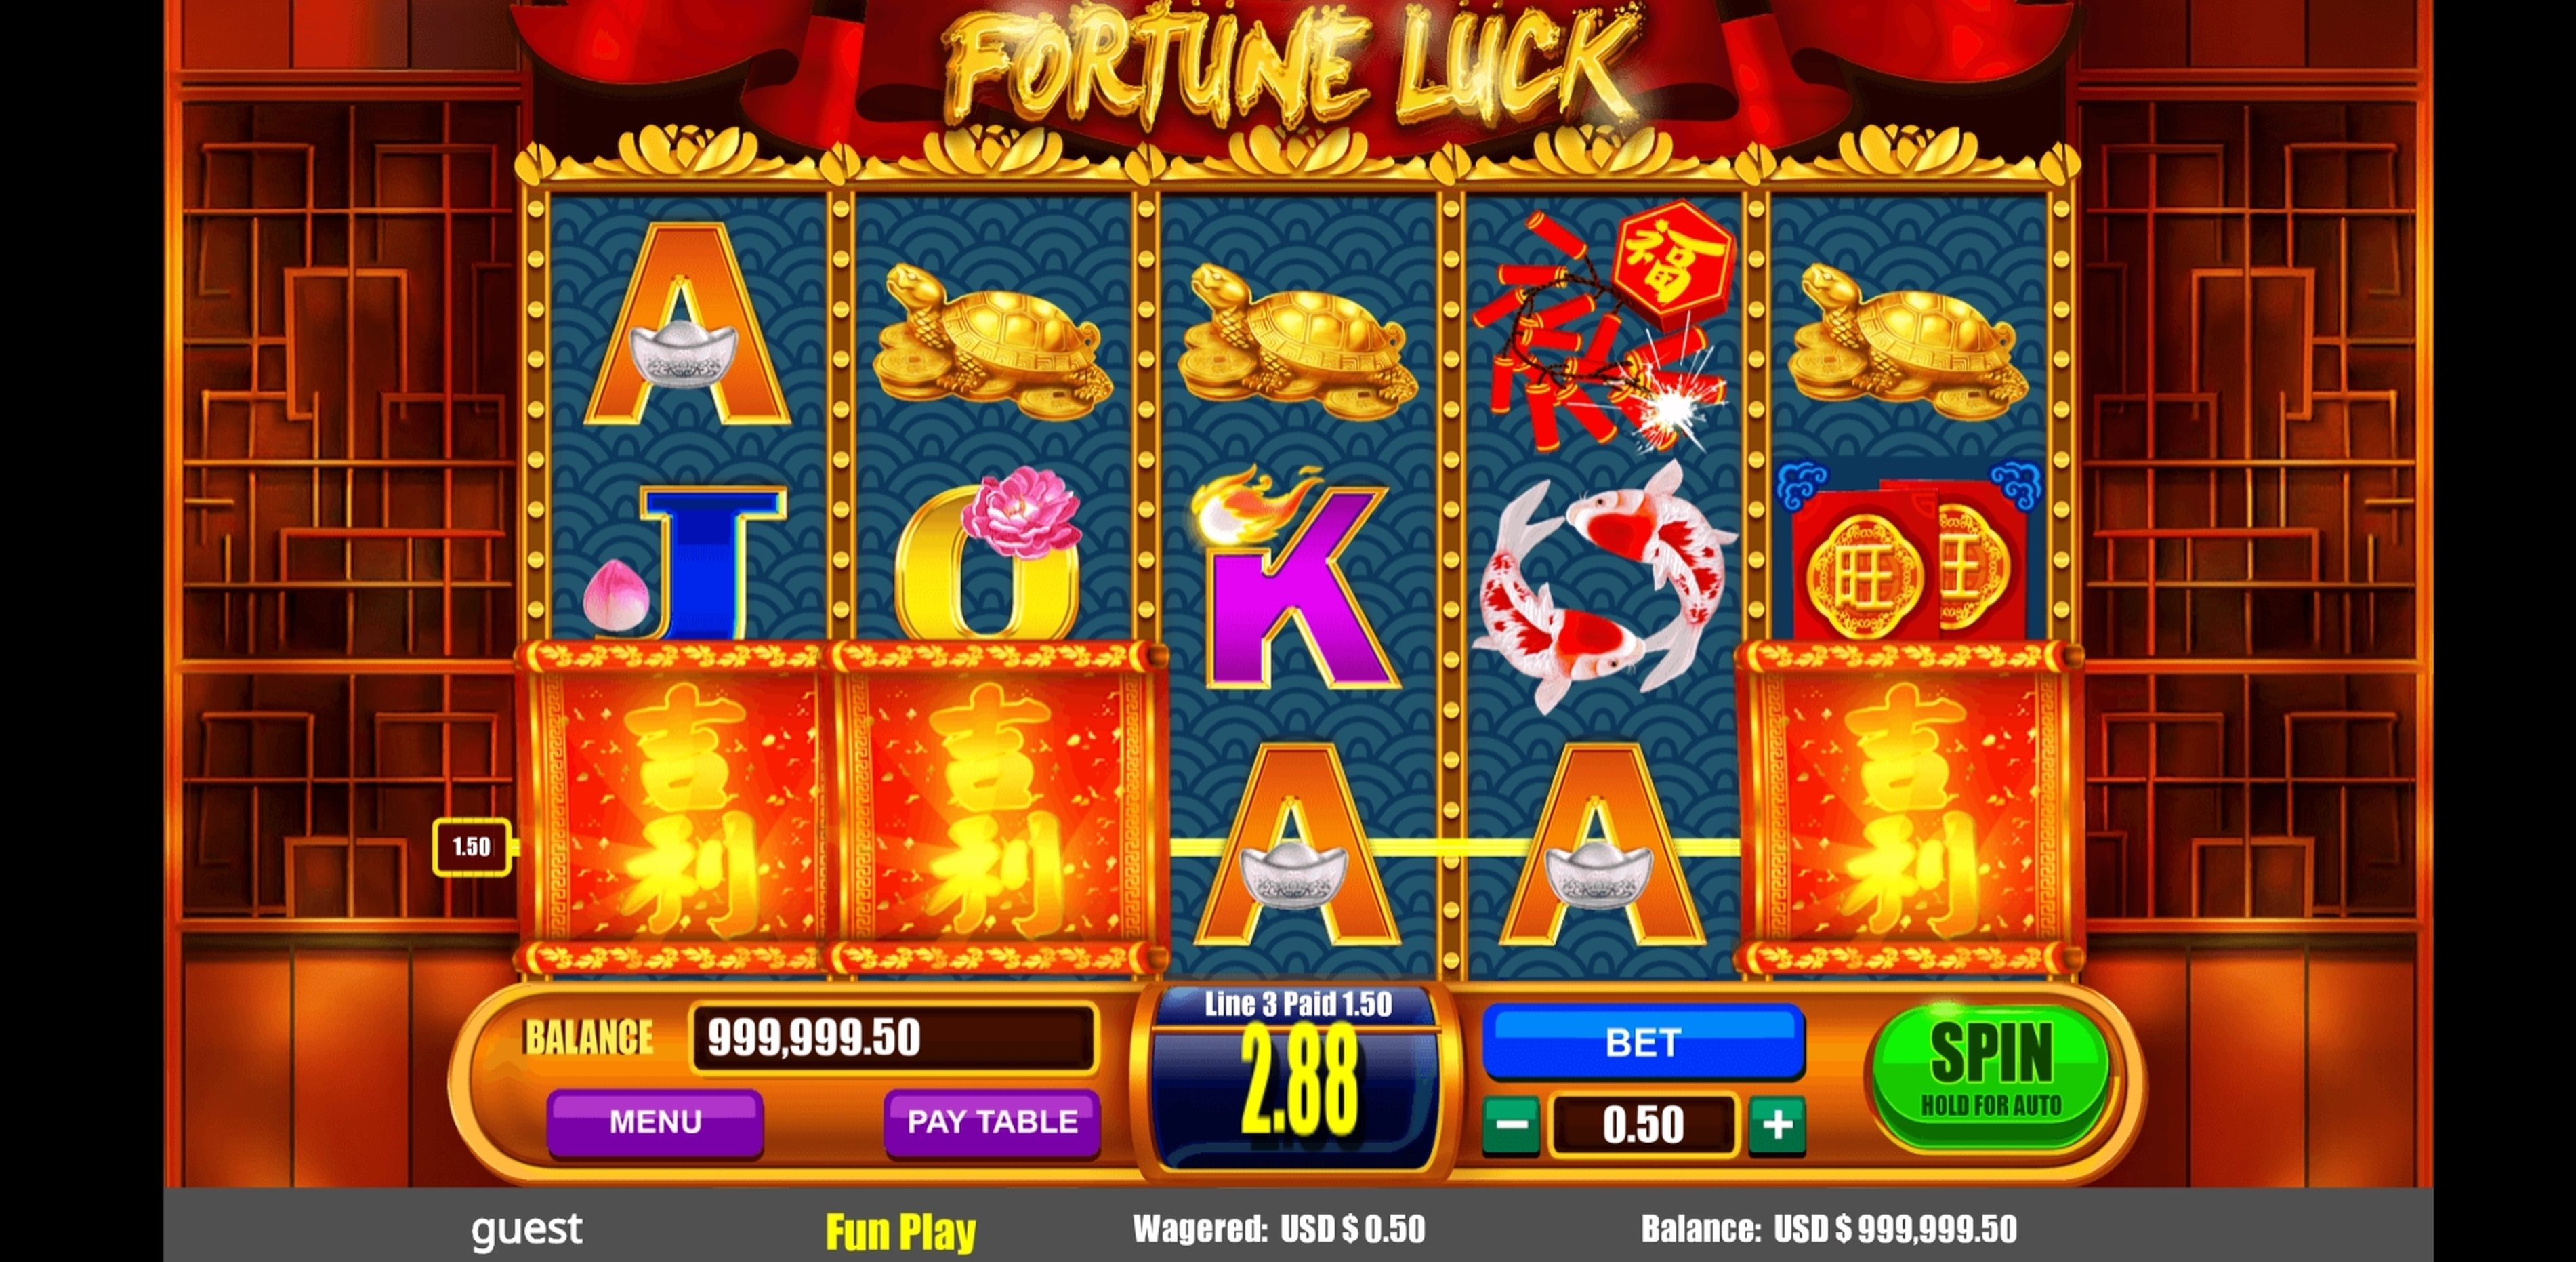 Win Money in Fortune Luck Free Slot Game by August Gaming